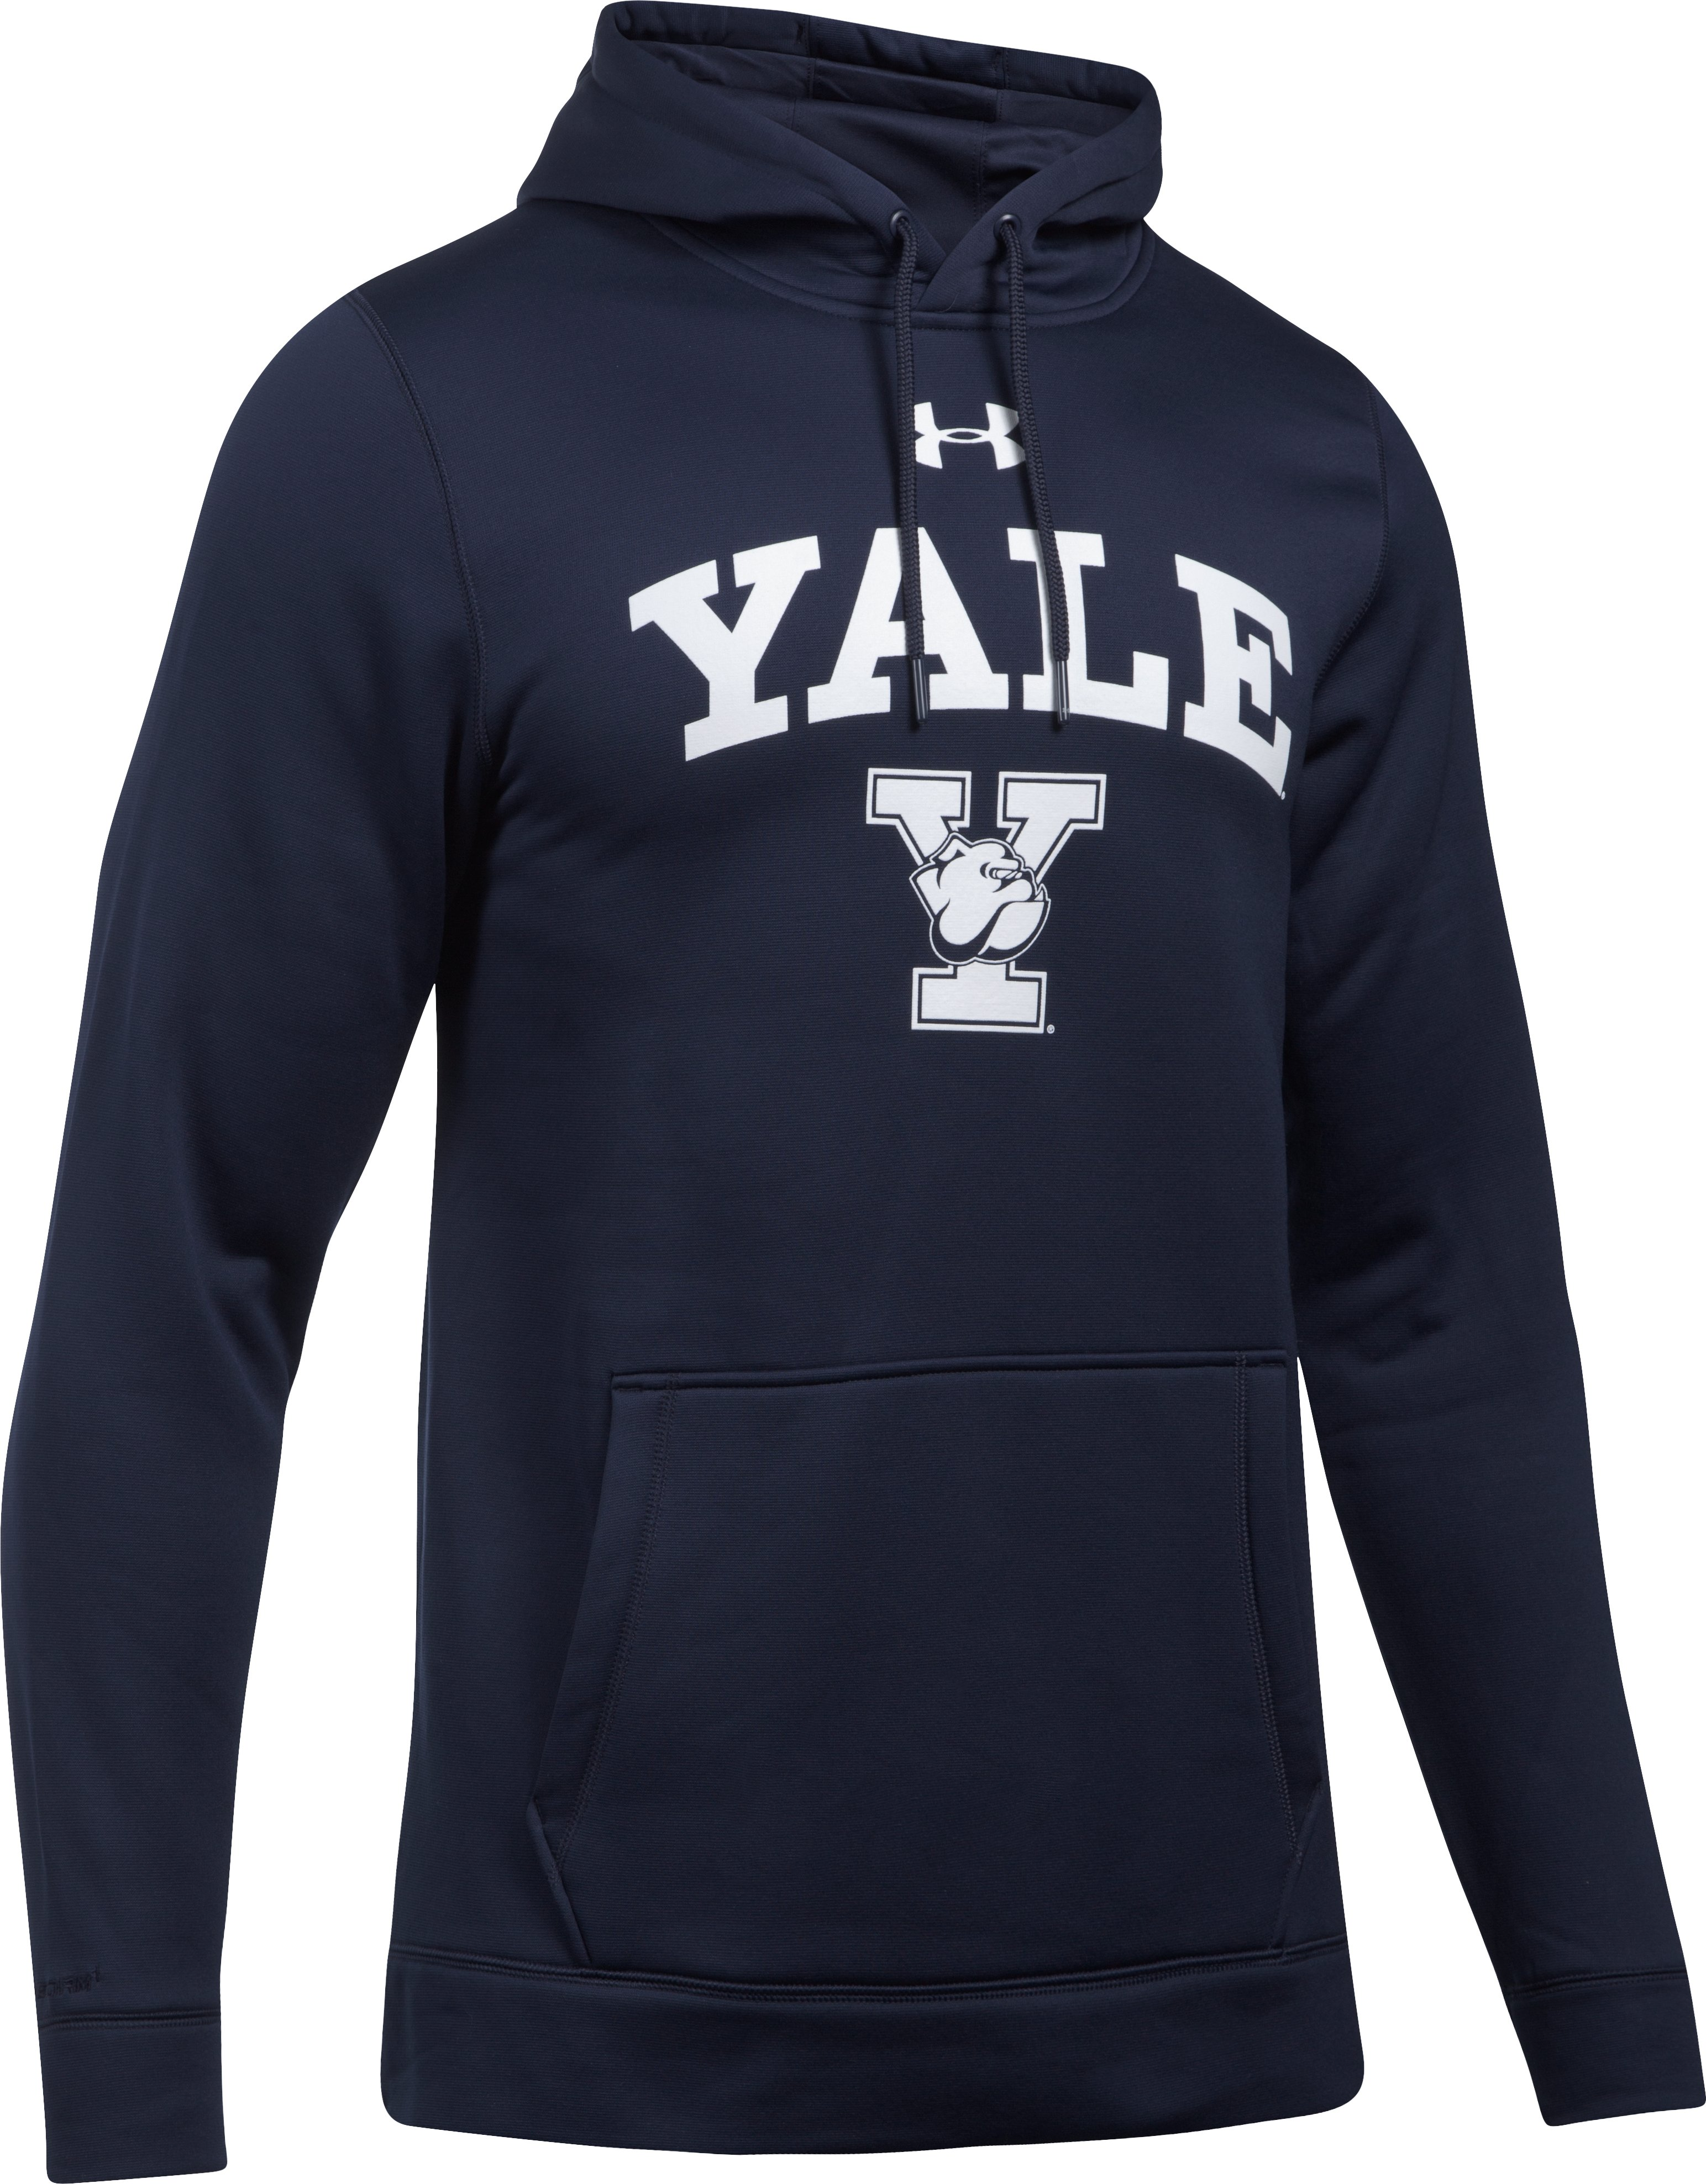 Men's Yale Armour® Fleece Hoodie, Midnight Navy